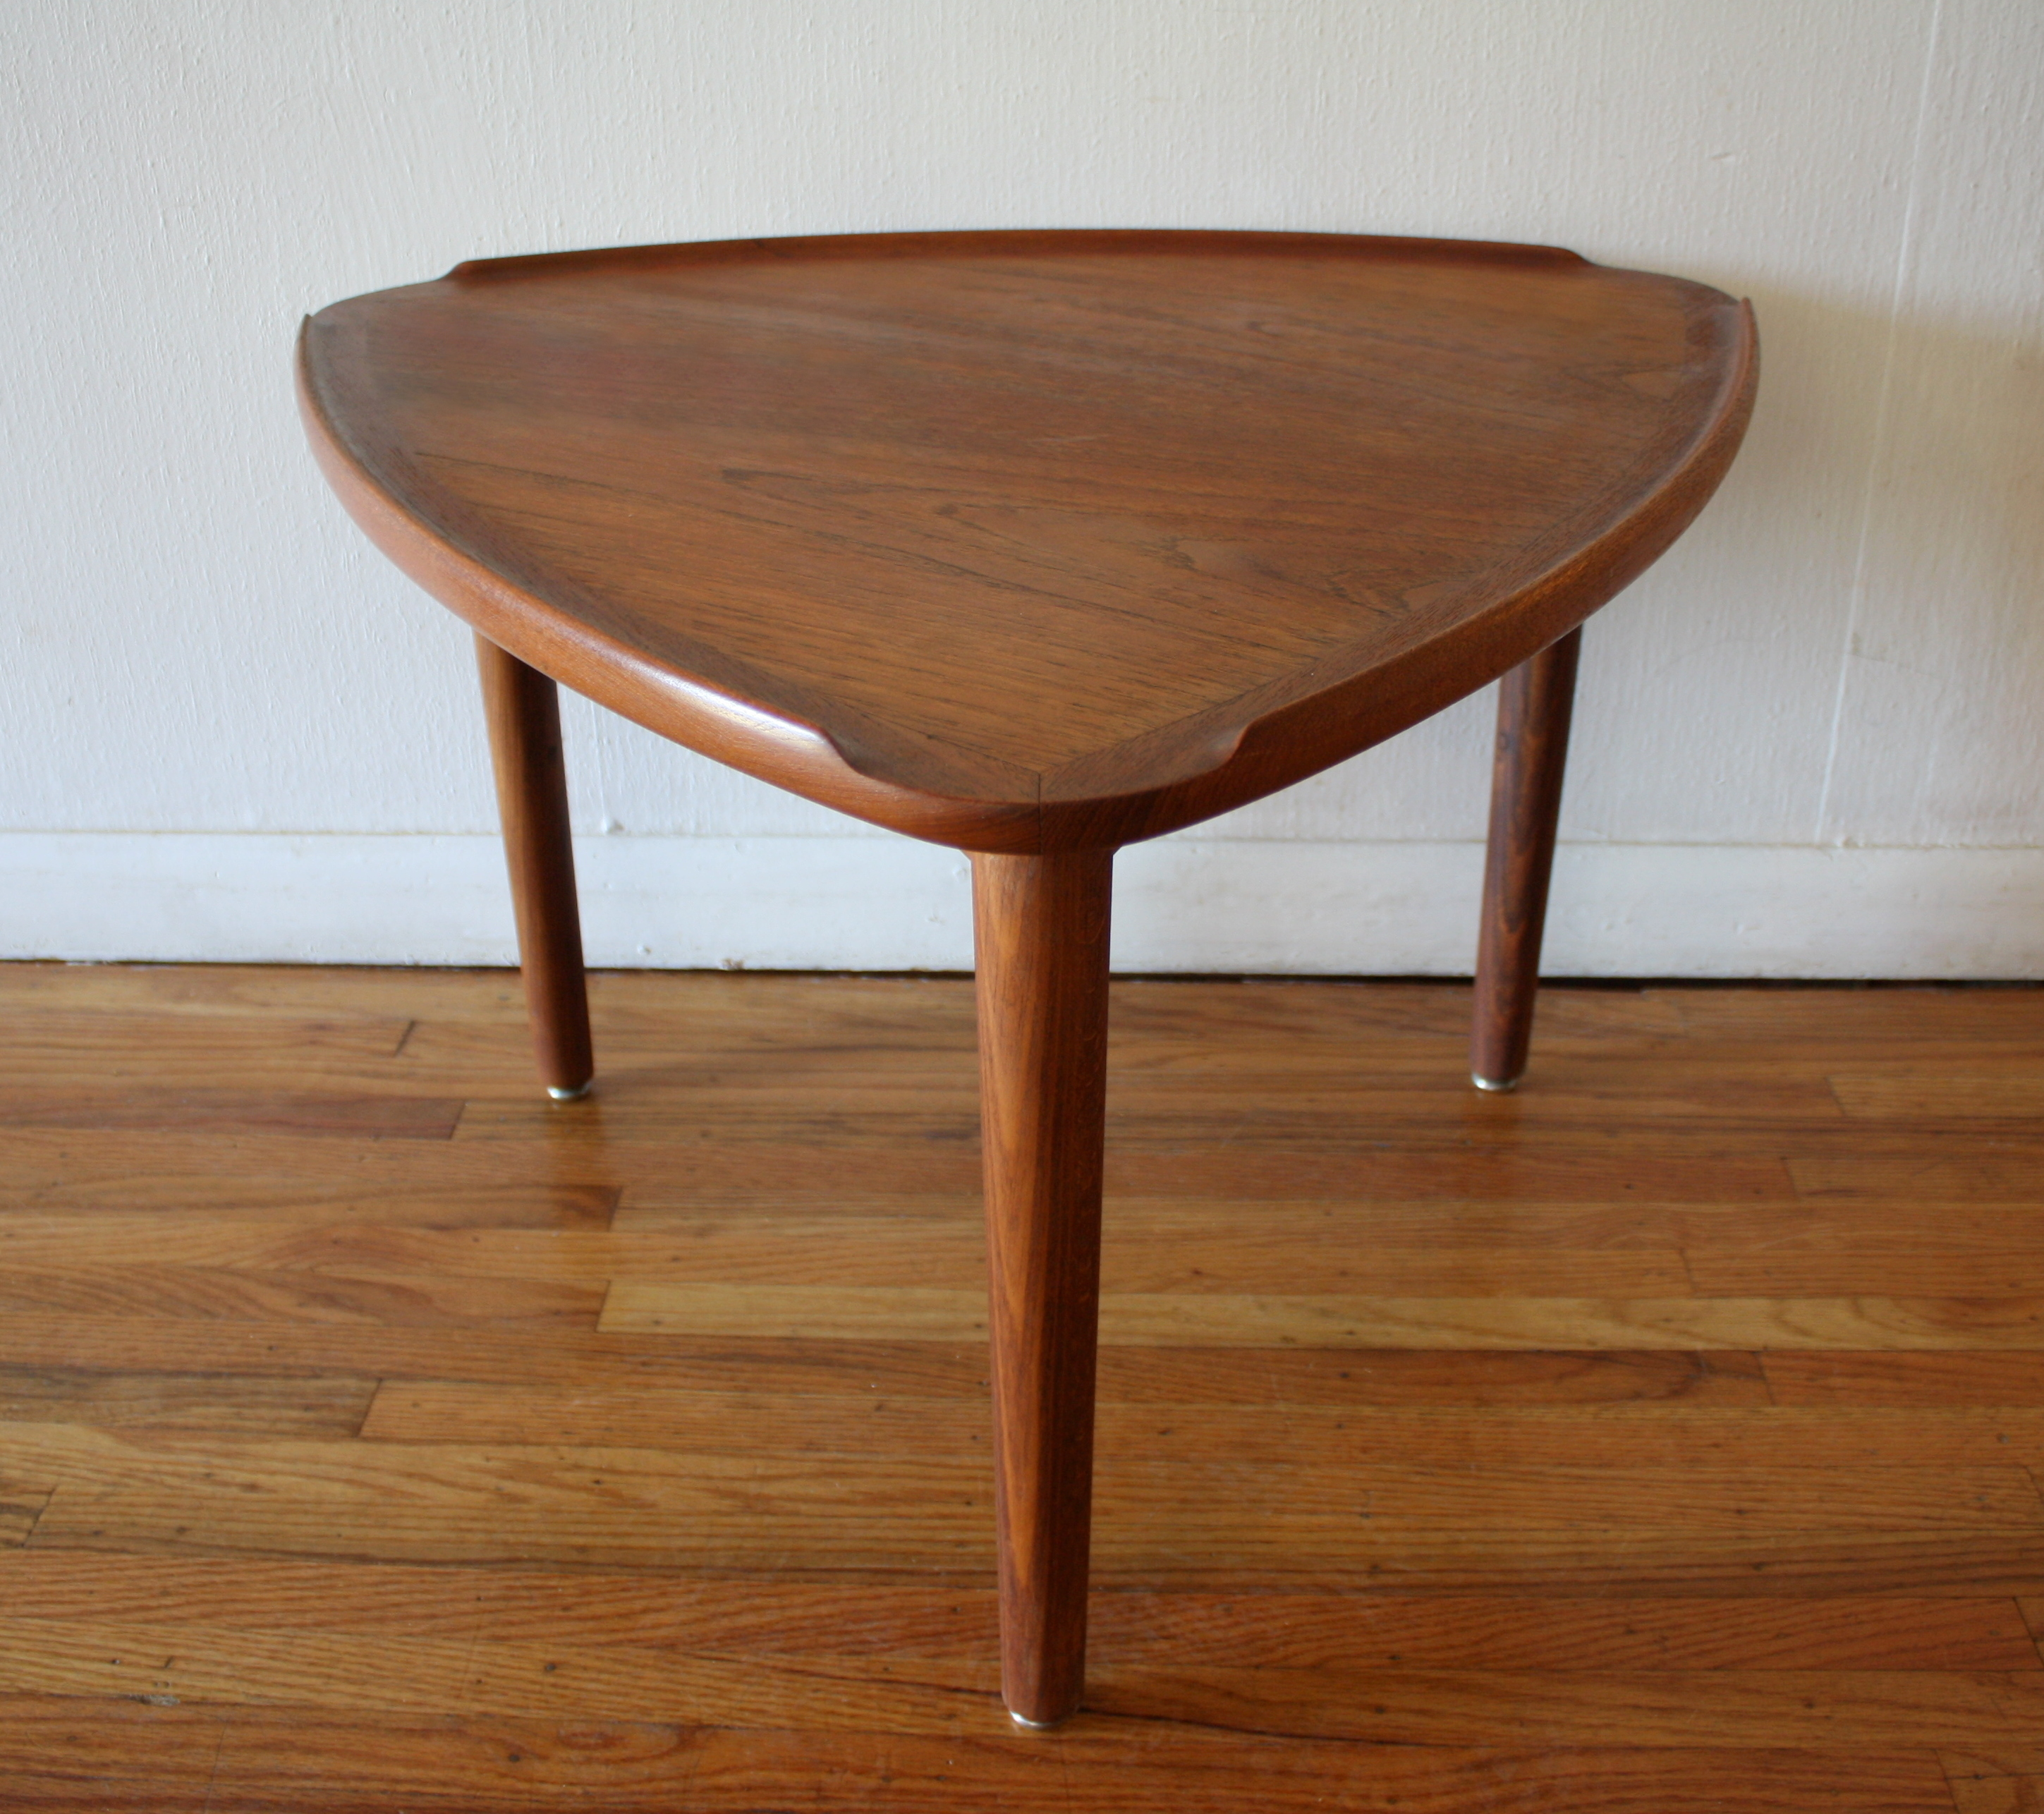 Danish Mid Century Modern Occasional Side Coffee Table Rosewood: Mid Century Modern Danish Teak Guitar Pick Side Table